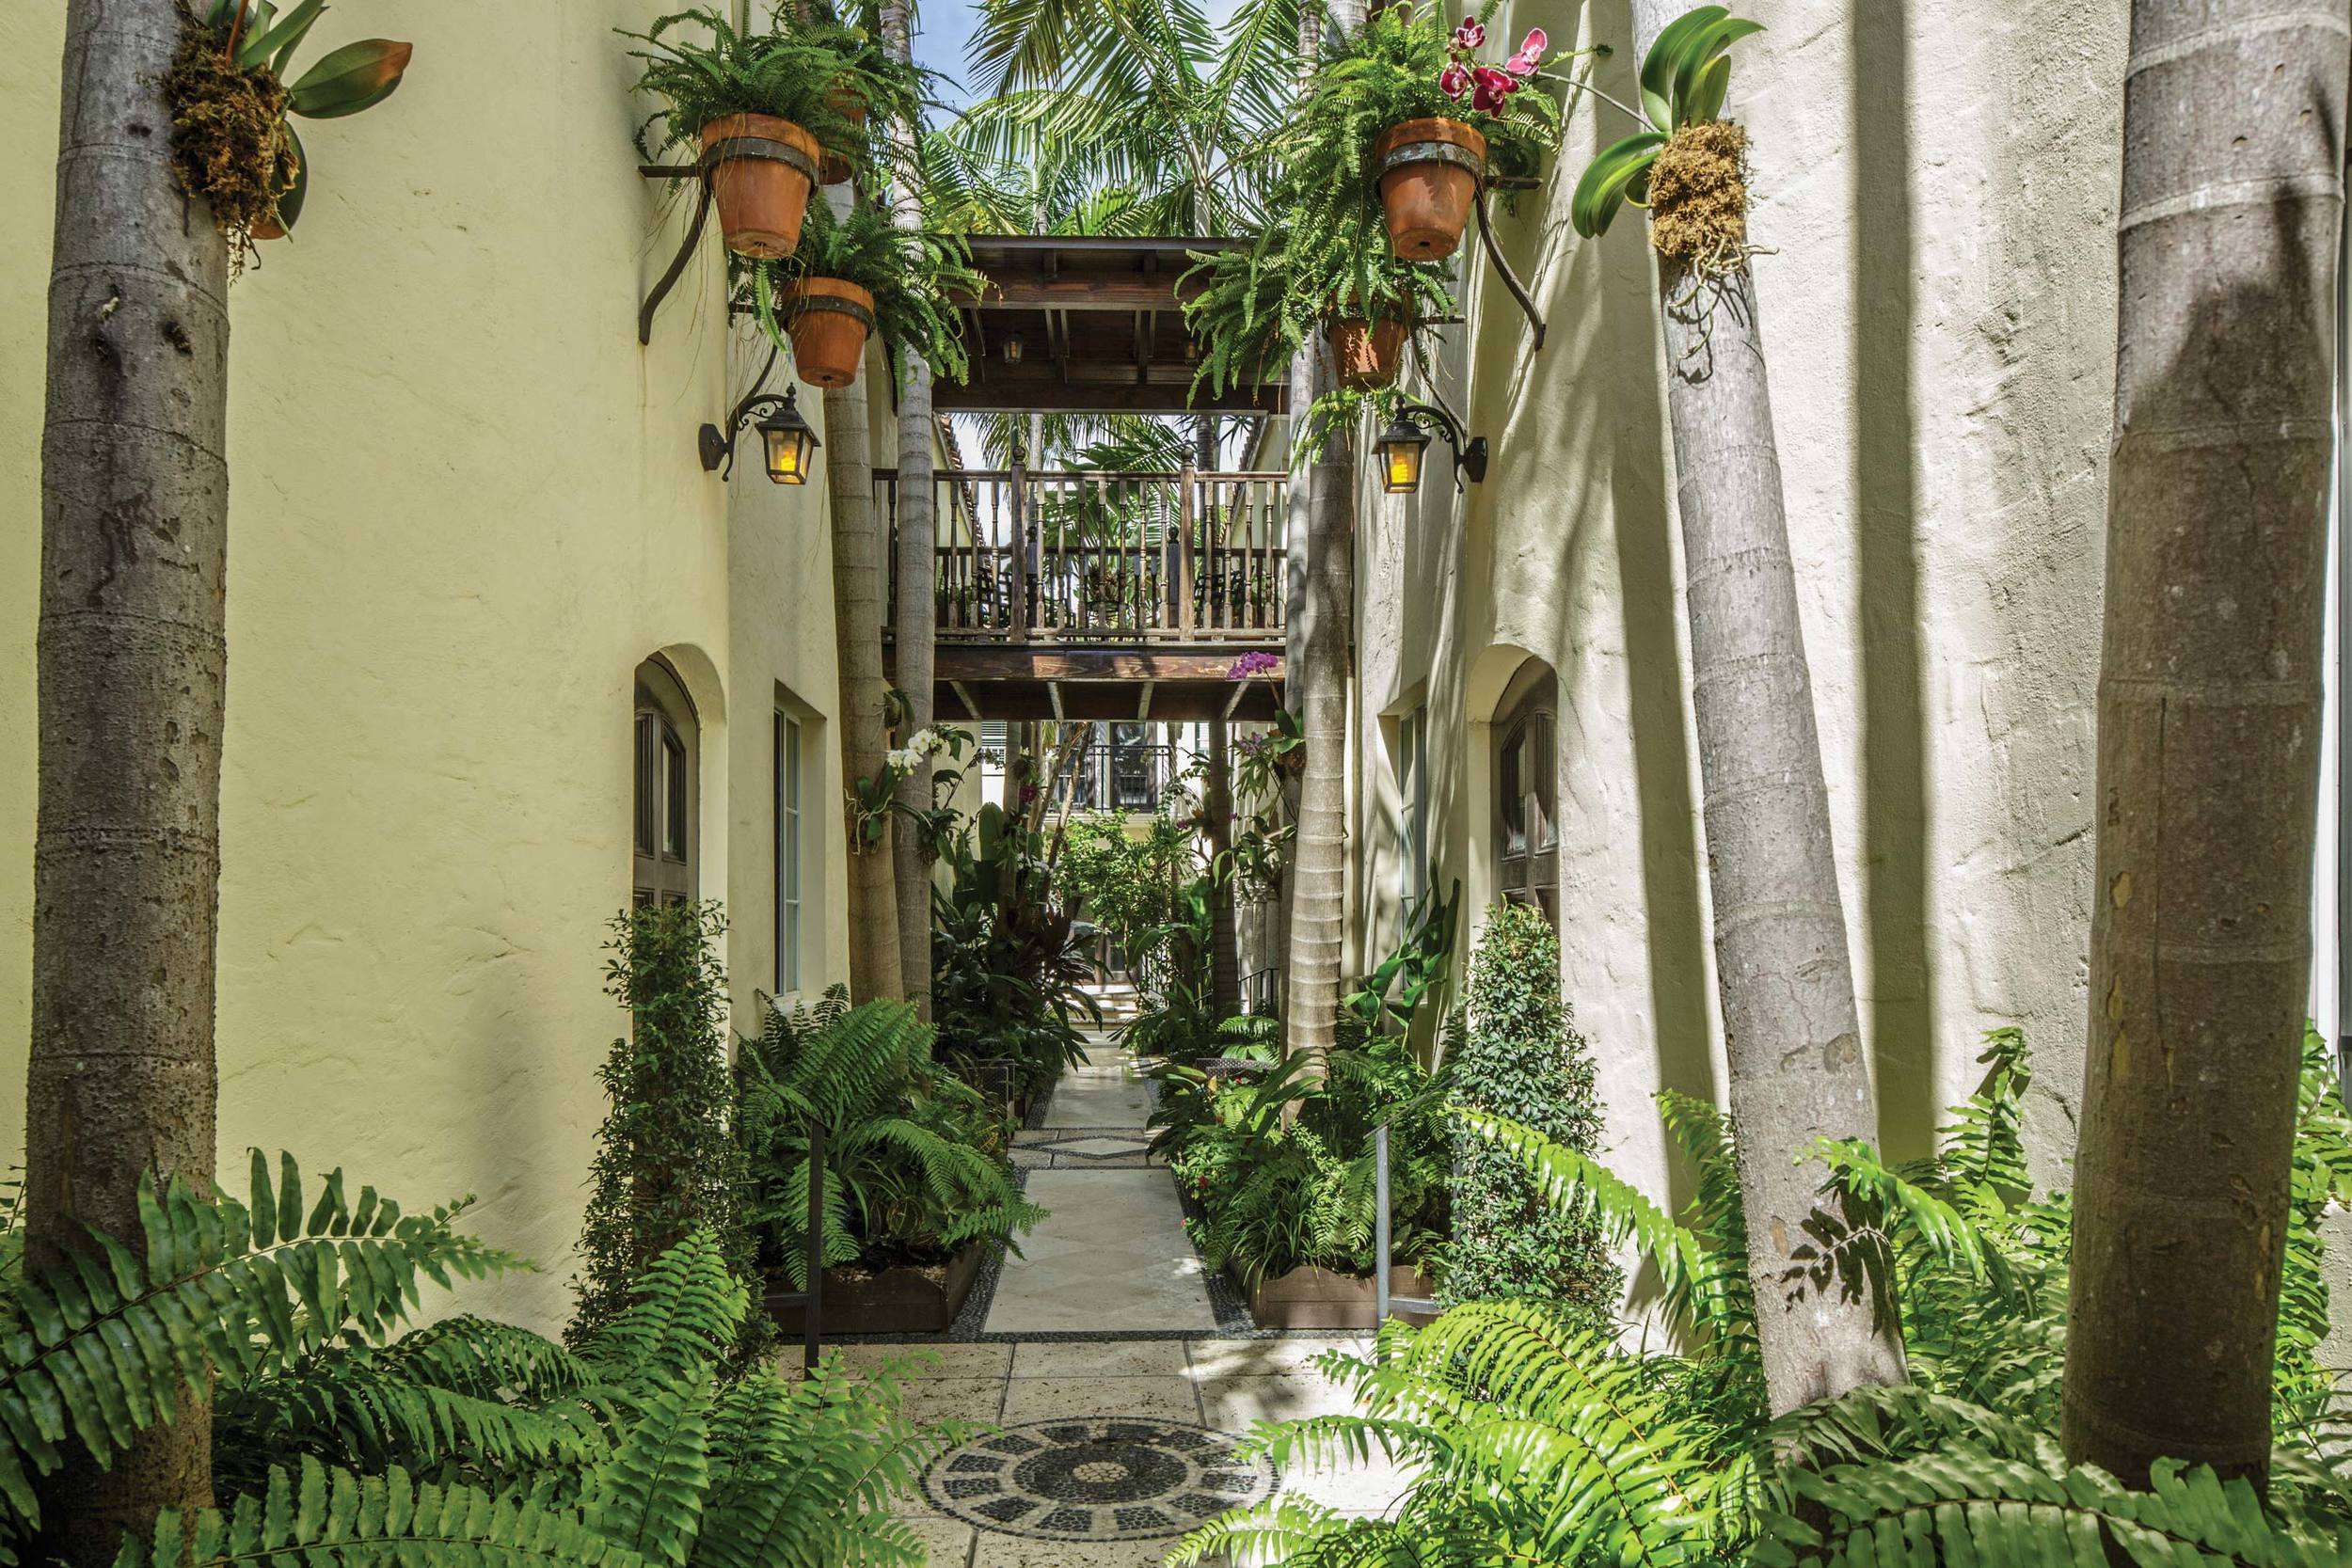 "<p>PROPERTY<strong>A 1931 mediterranean villa inspired by the Dolce Vita lifestyle, the Orchid House spoils you with the charm and comfort of a private home.</strong><a href=""/property"">MORE</a></p>"